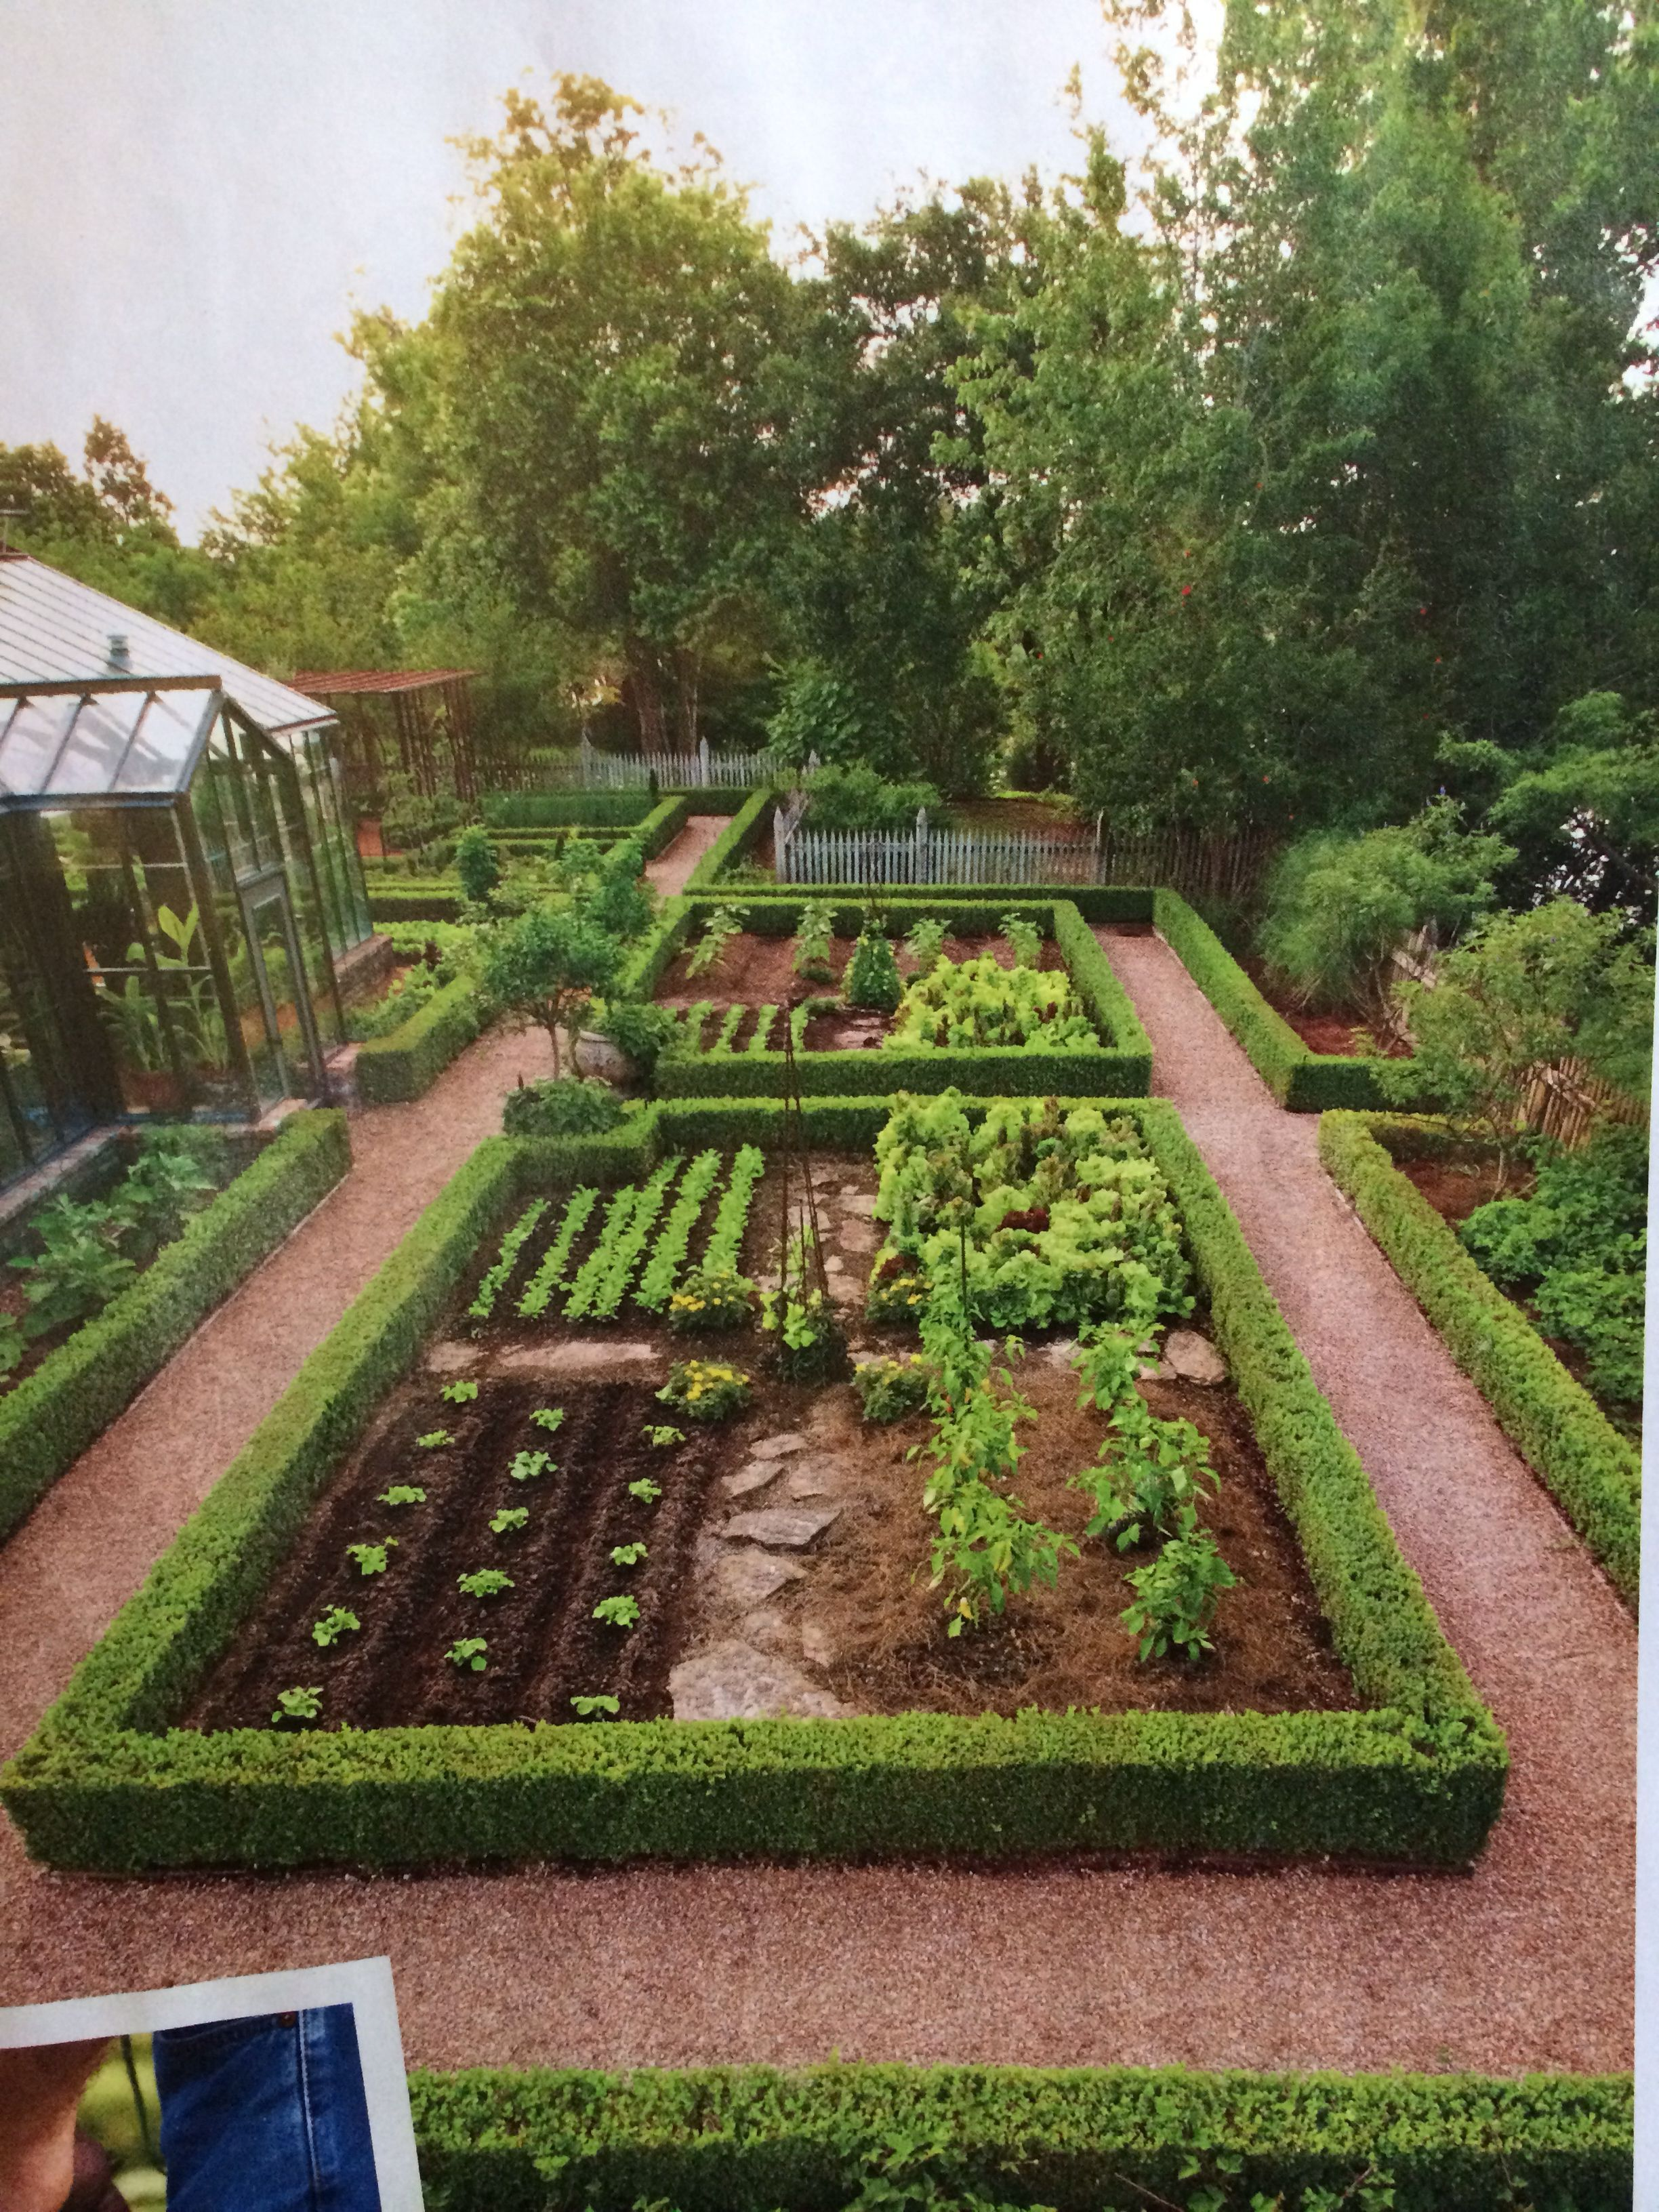 How To Be Successful With Organic Gardening Garden Layout